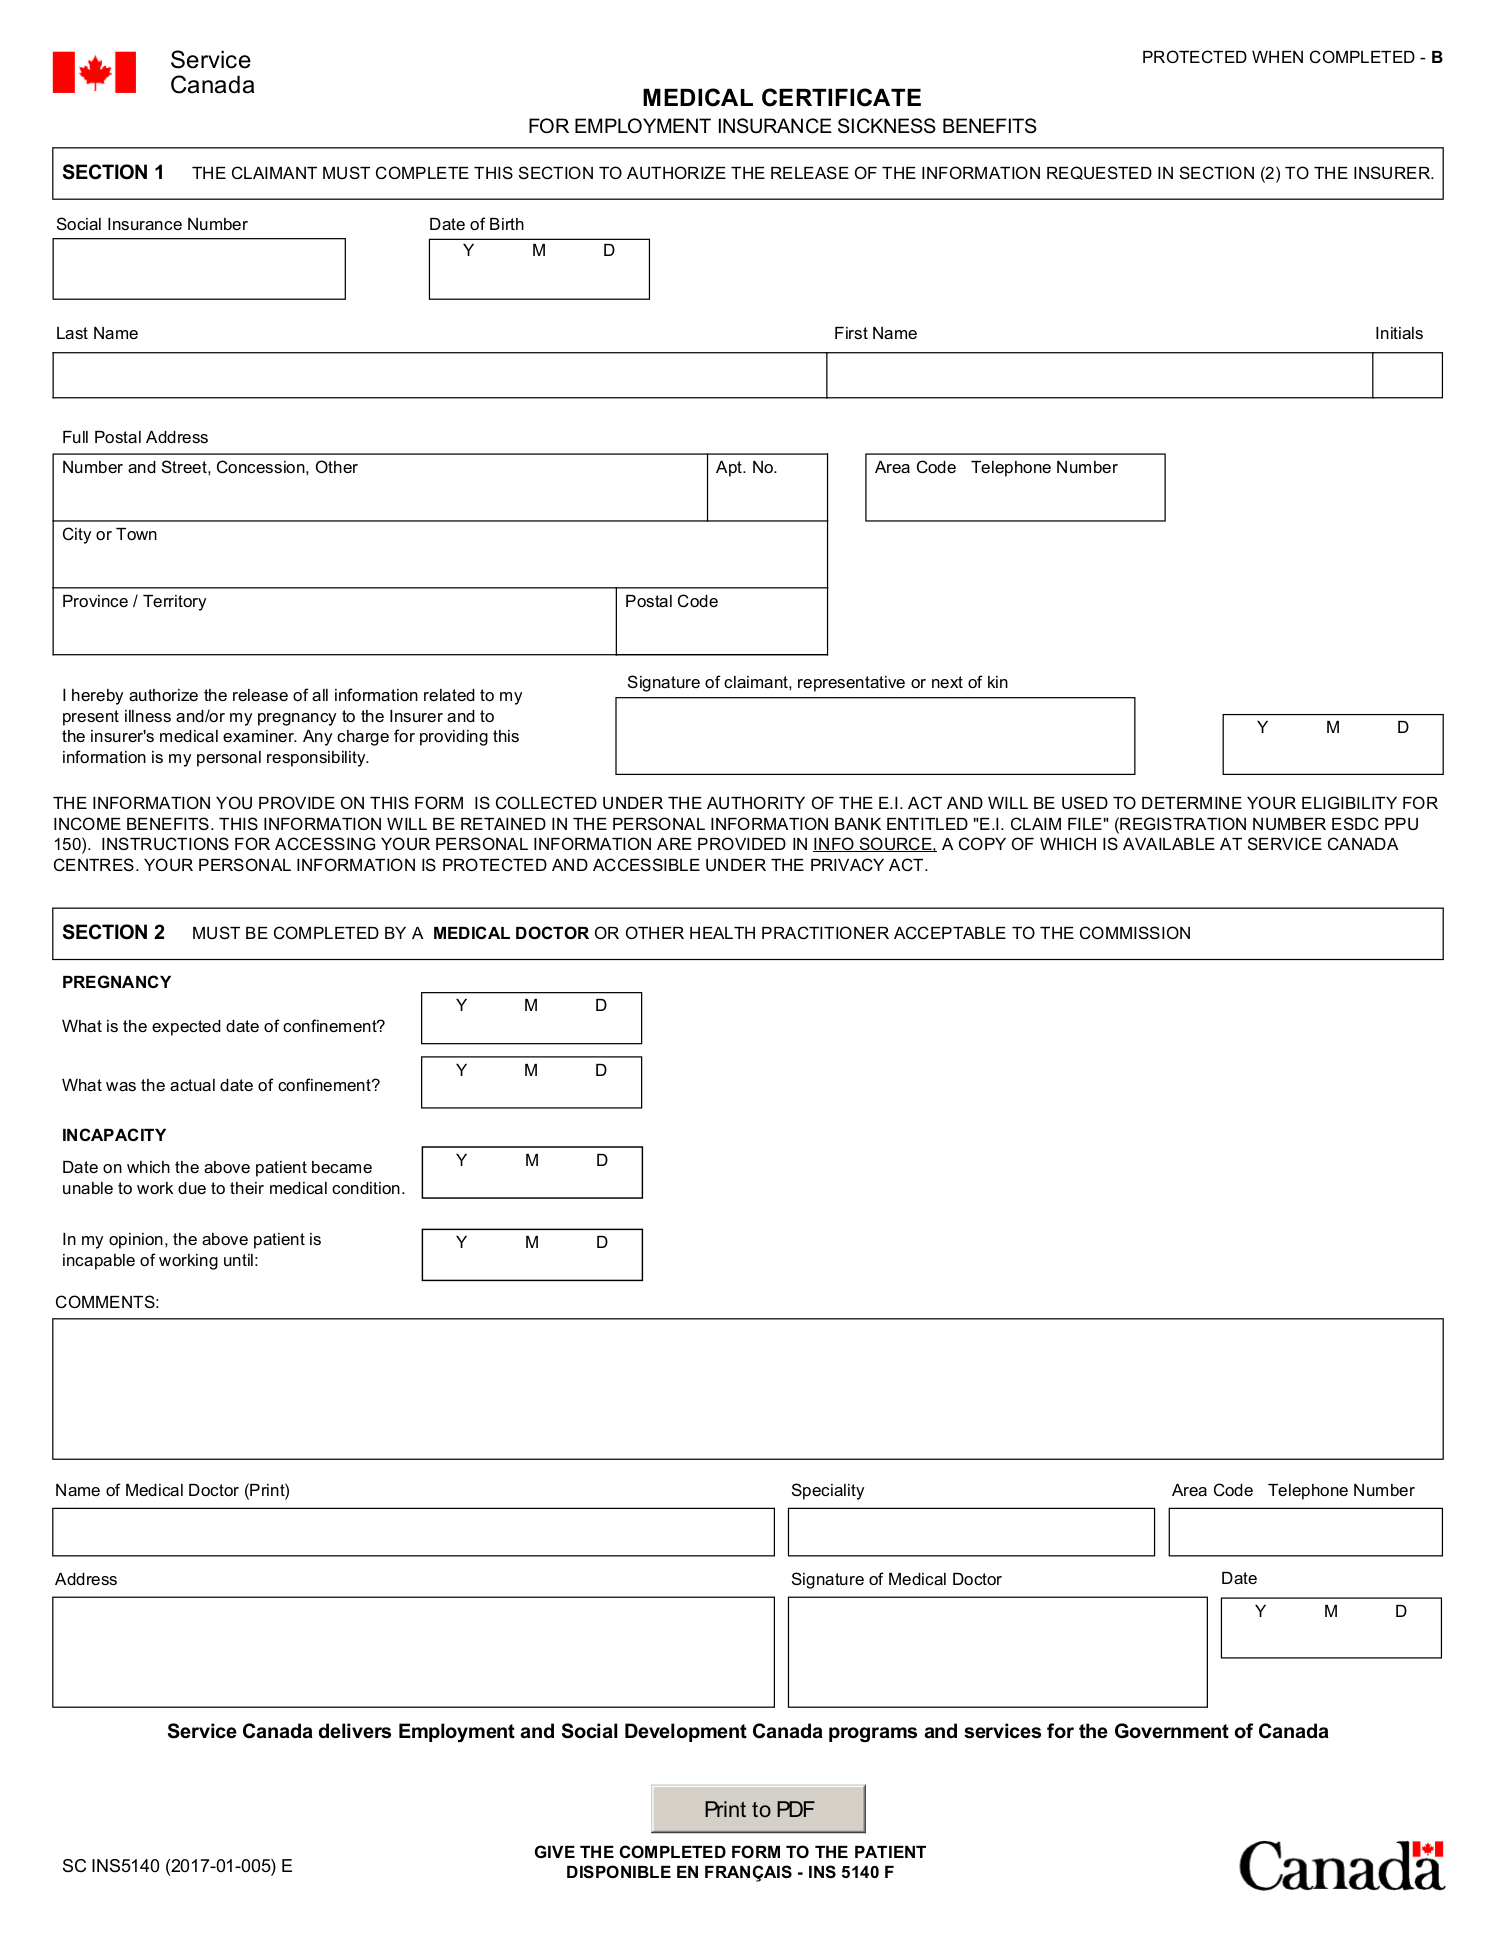 Service Canada Medical Certificate For Employment Insurance Sickness Benefits Juno Emr Support Portal